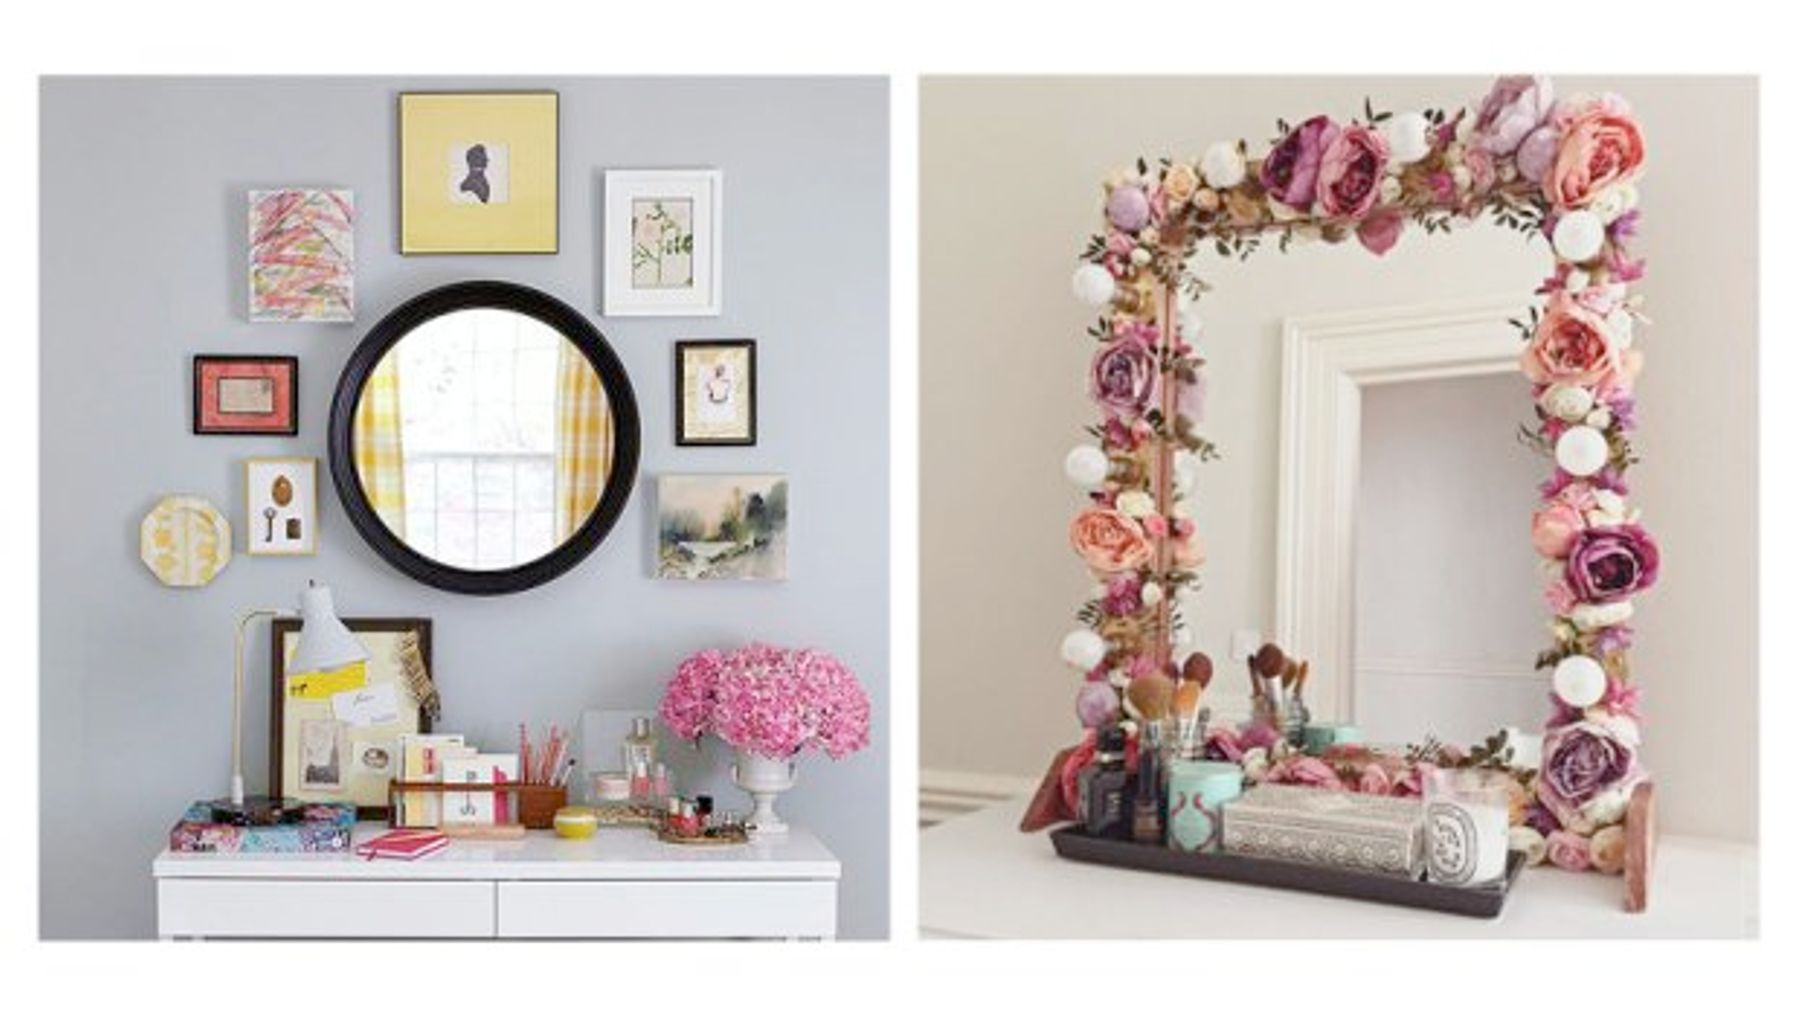 How To Set Up The Vanity Table Of Your Dreams Thanks To ...